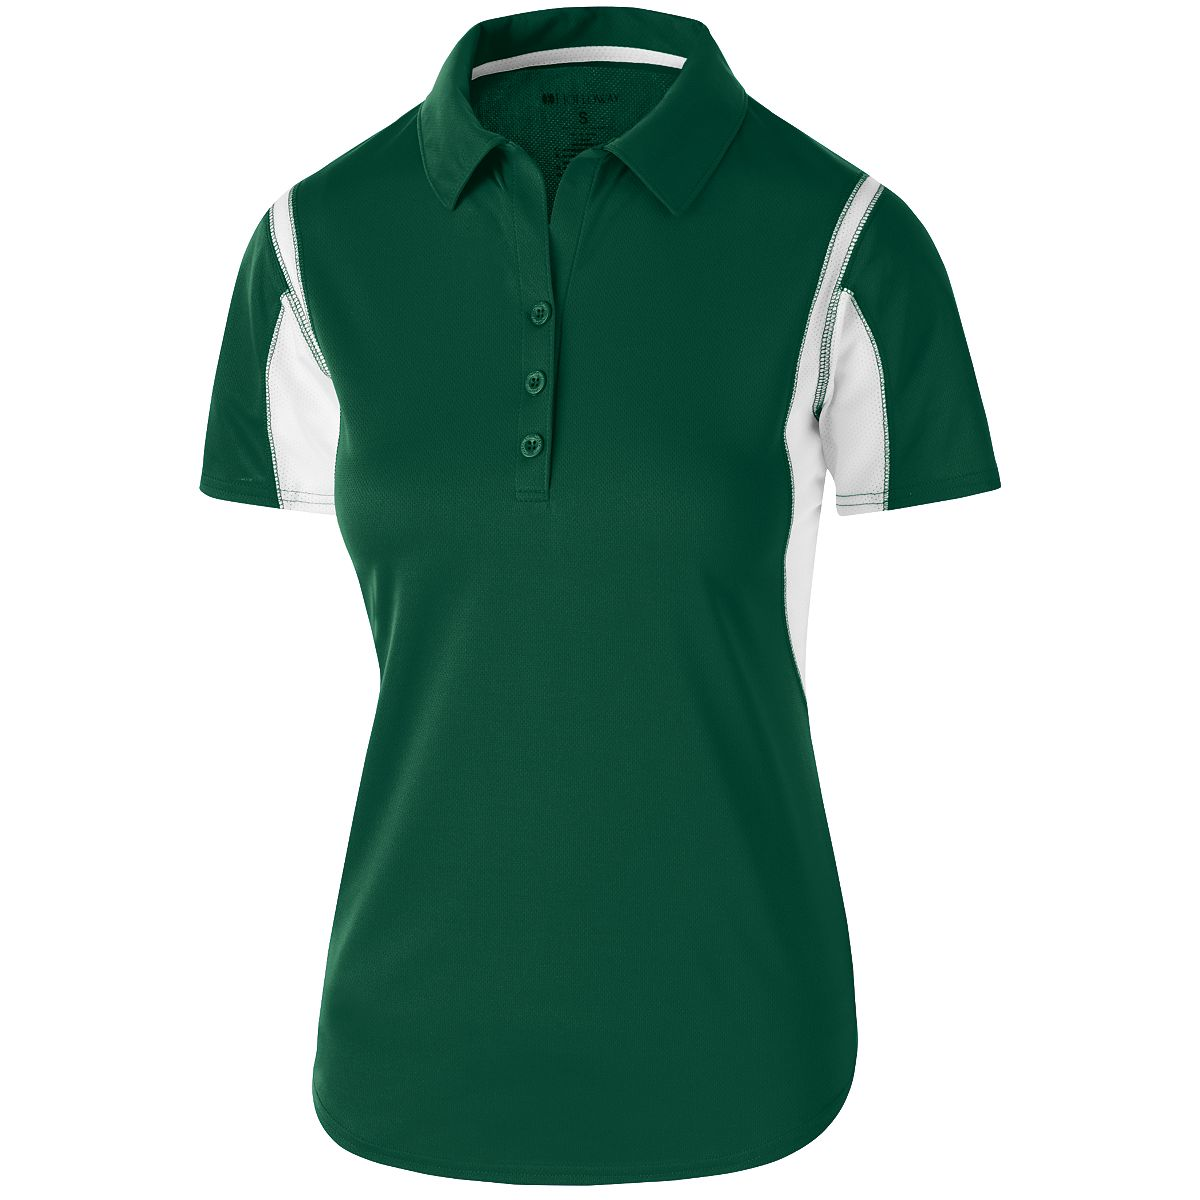 Holloway Ladies Integrate Polo For/Whi 3Xl - image 1 of 1